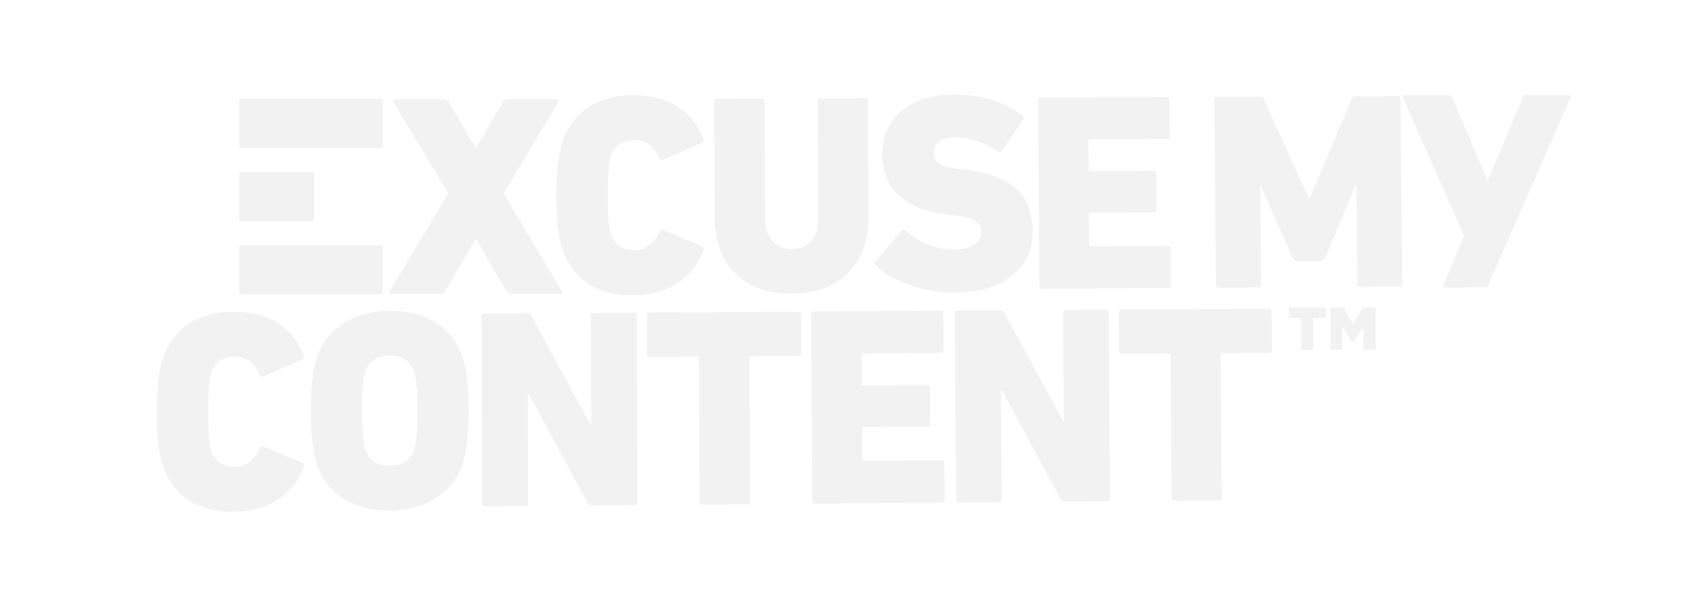 EXCUSE MY CONTENT LOGO 2B.png